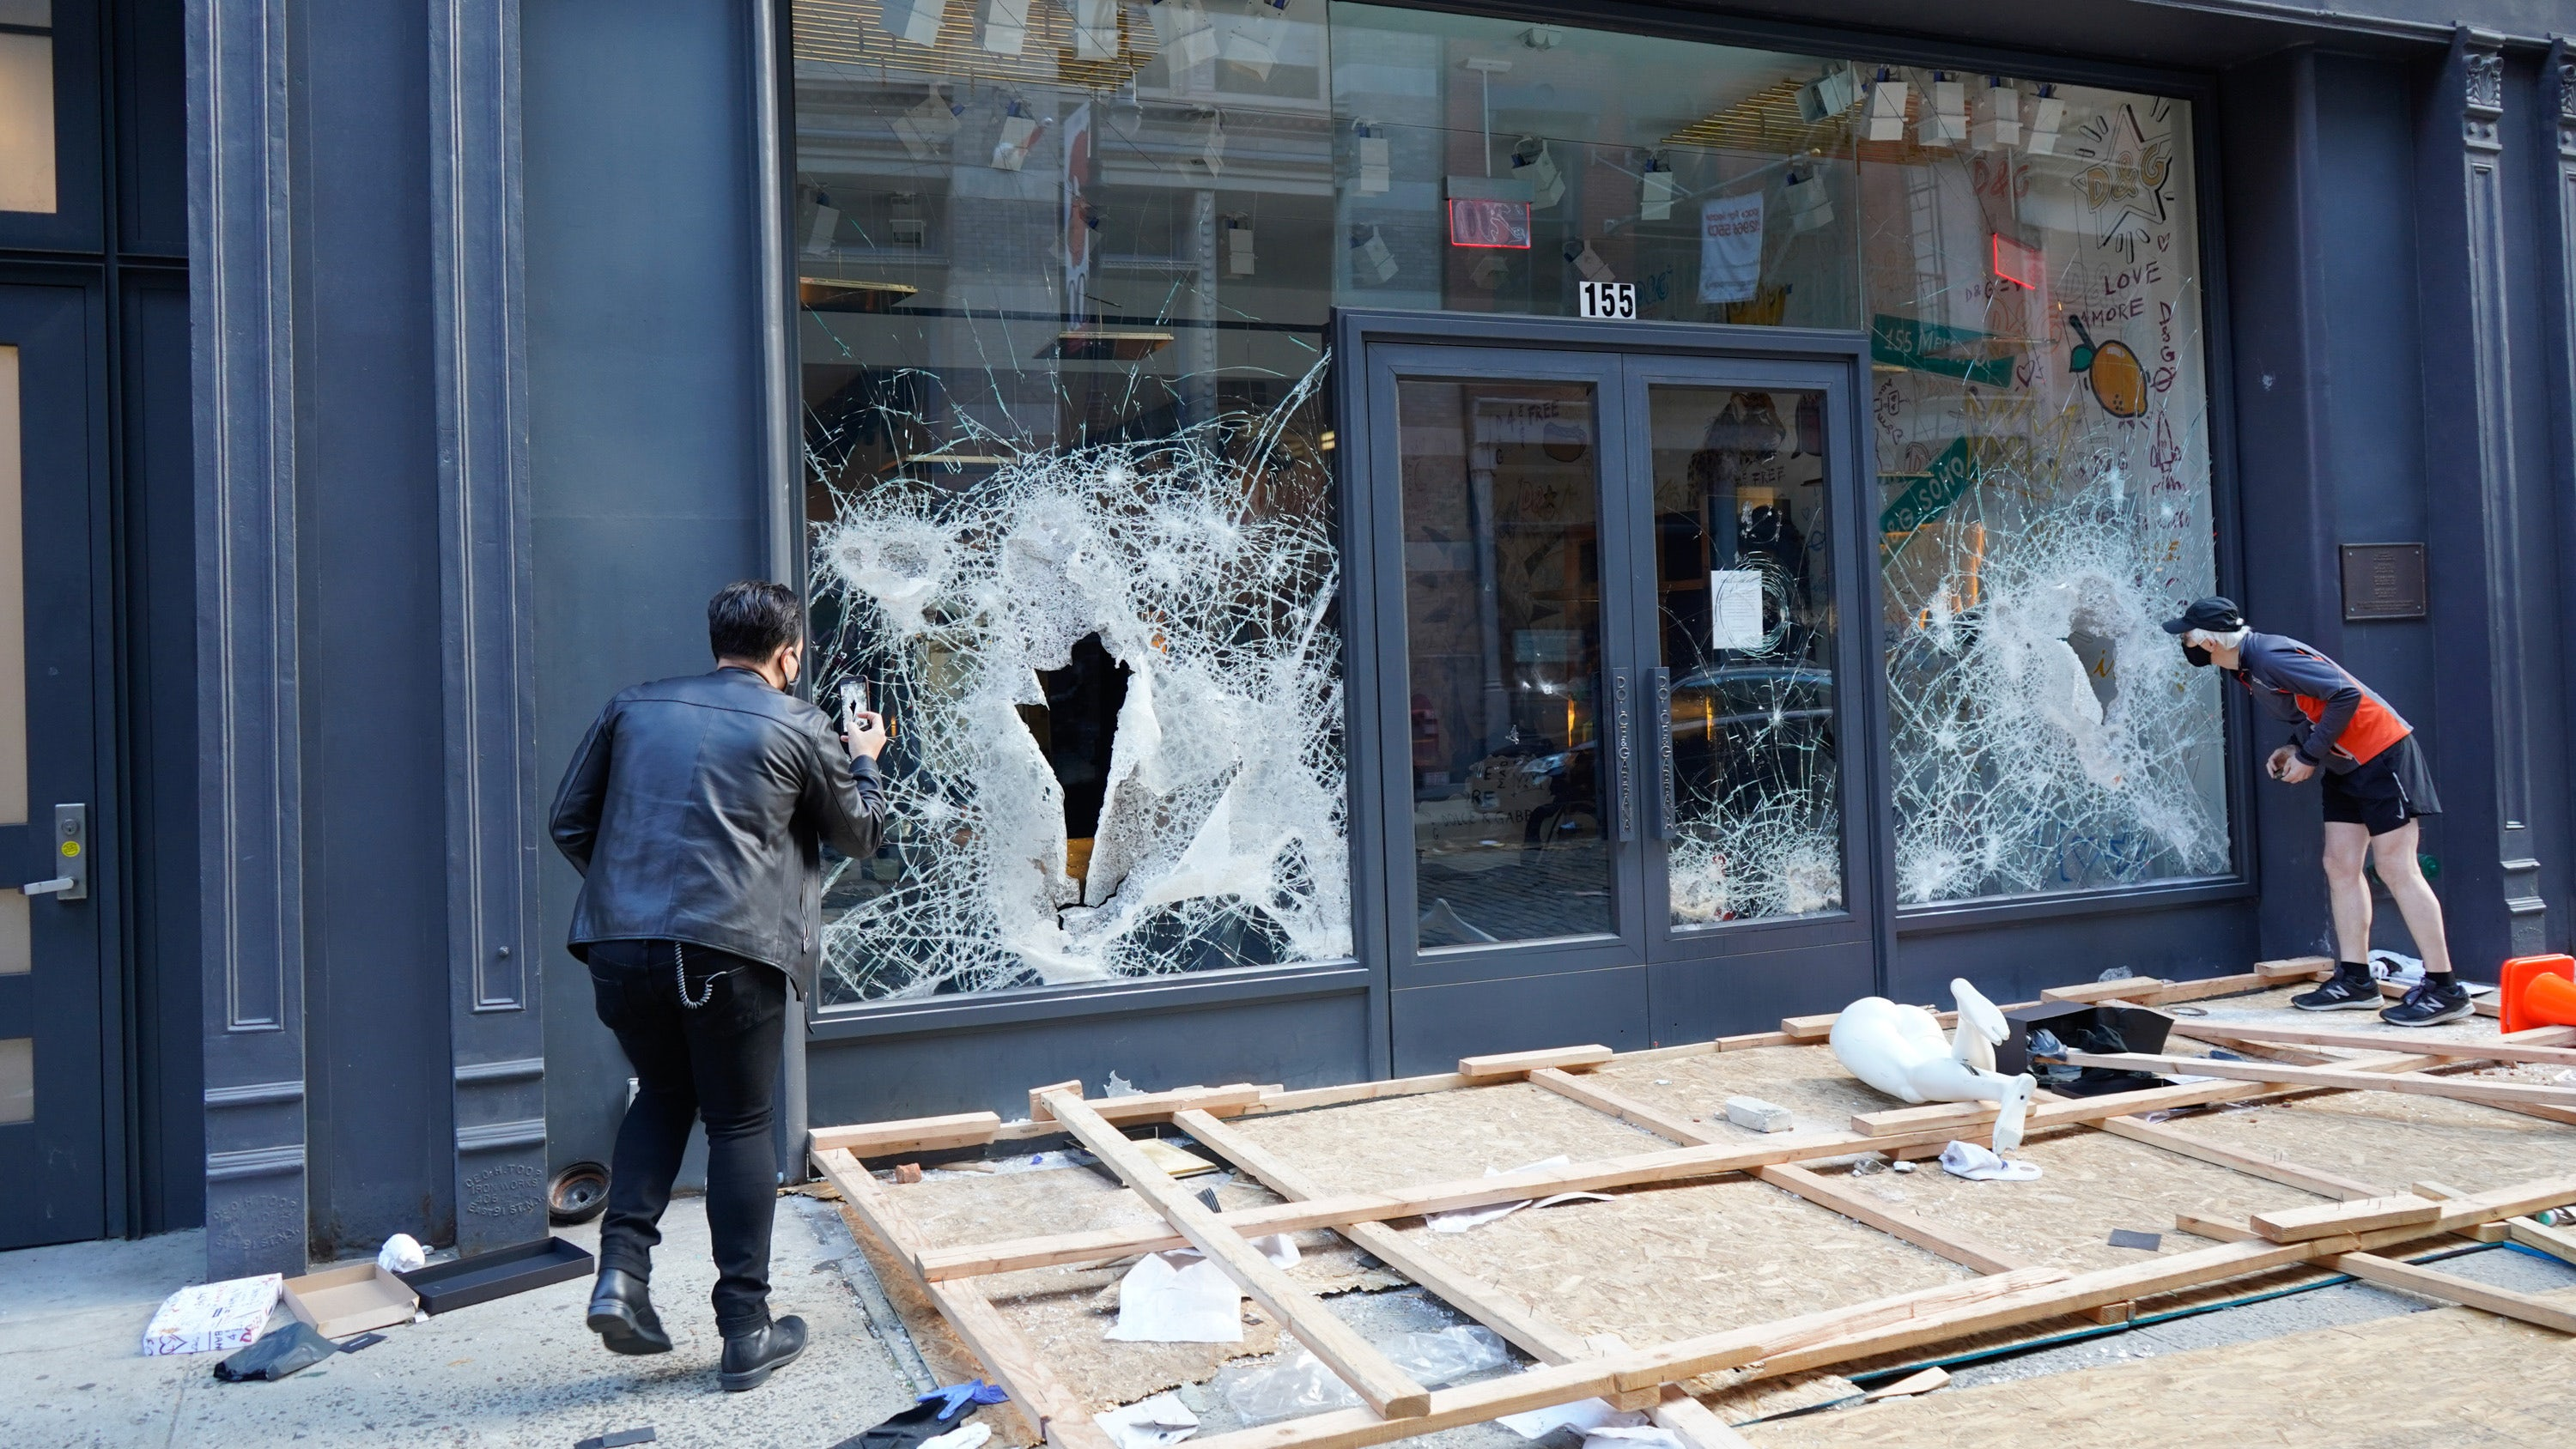 Big Retailers Say They Don't Mind the Looting. It's Different for Small Businesses.